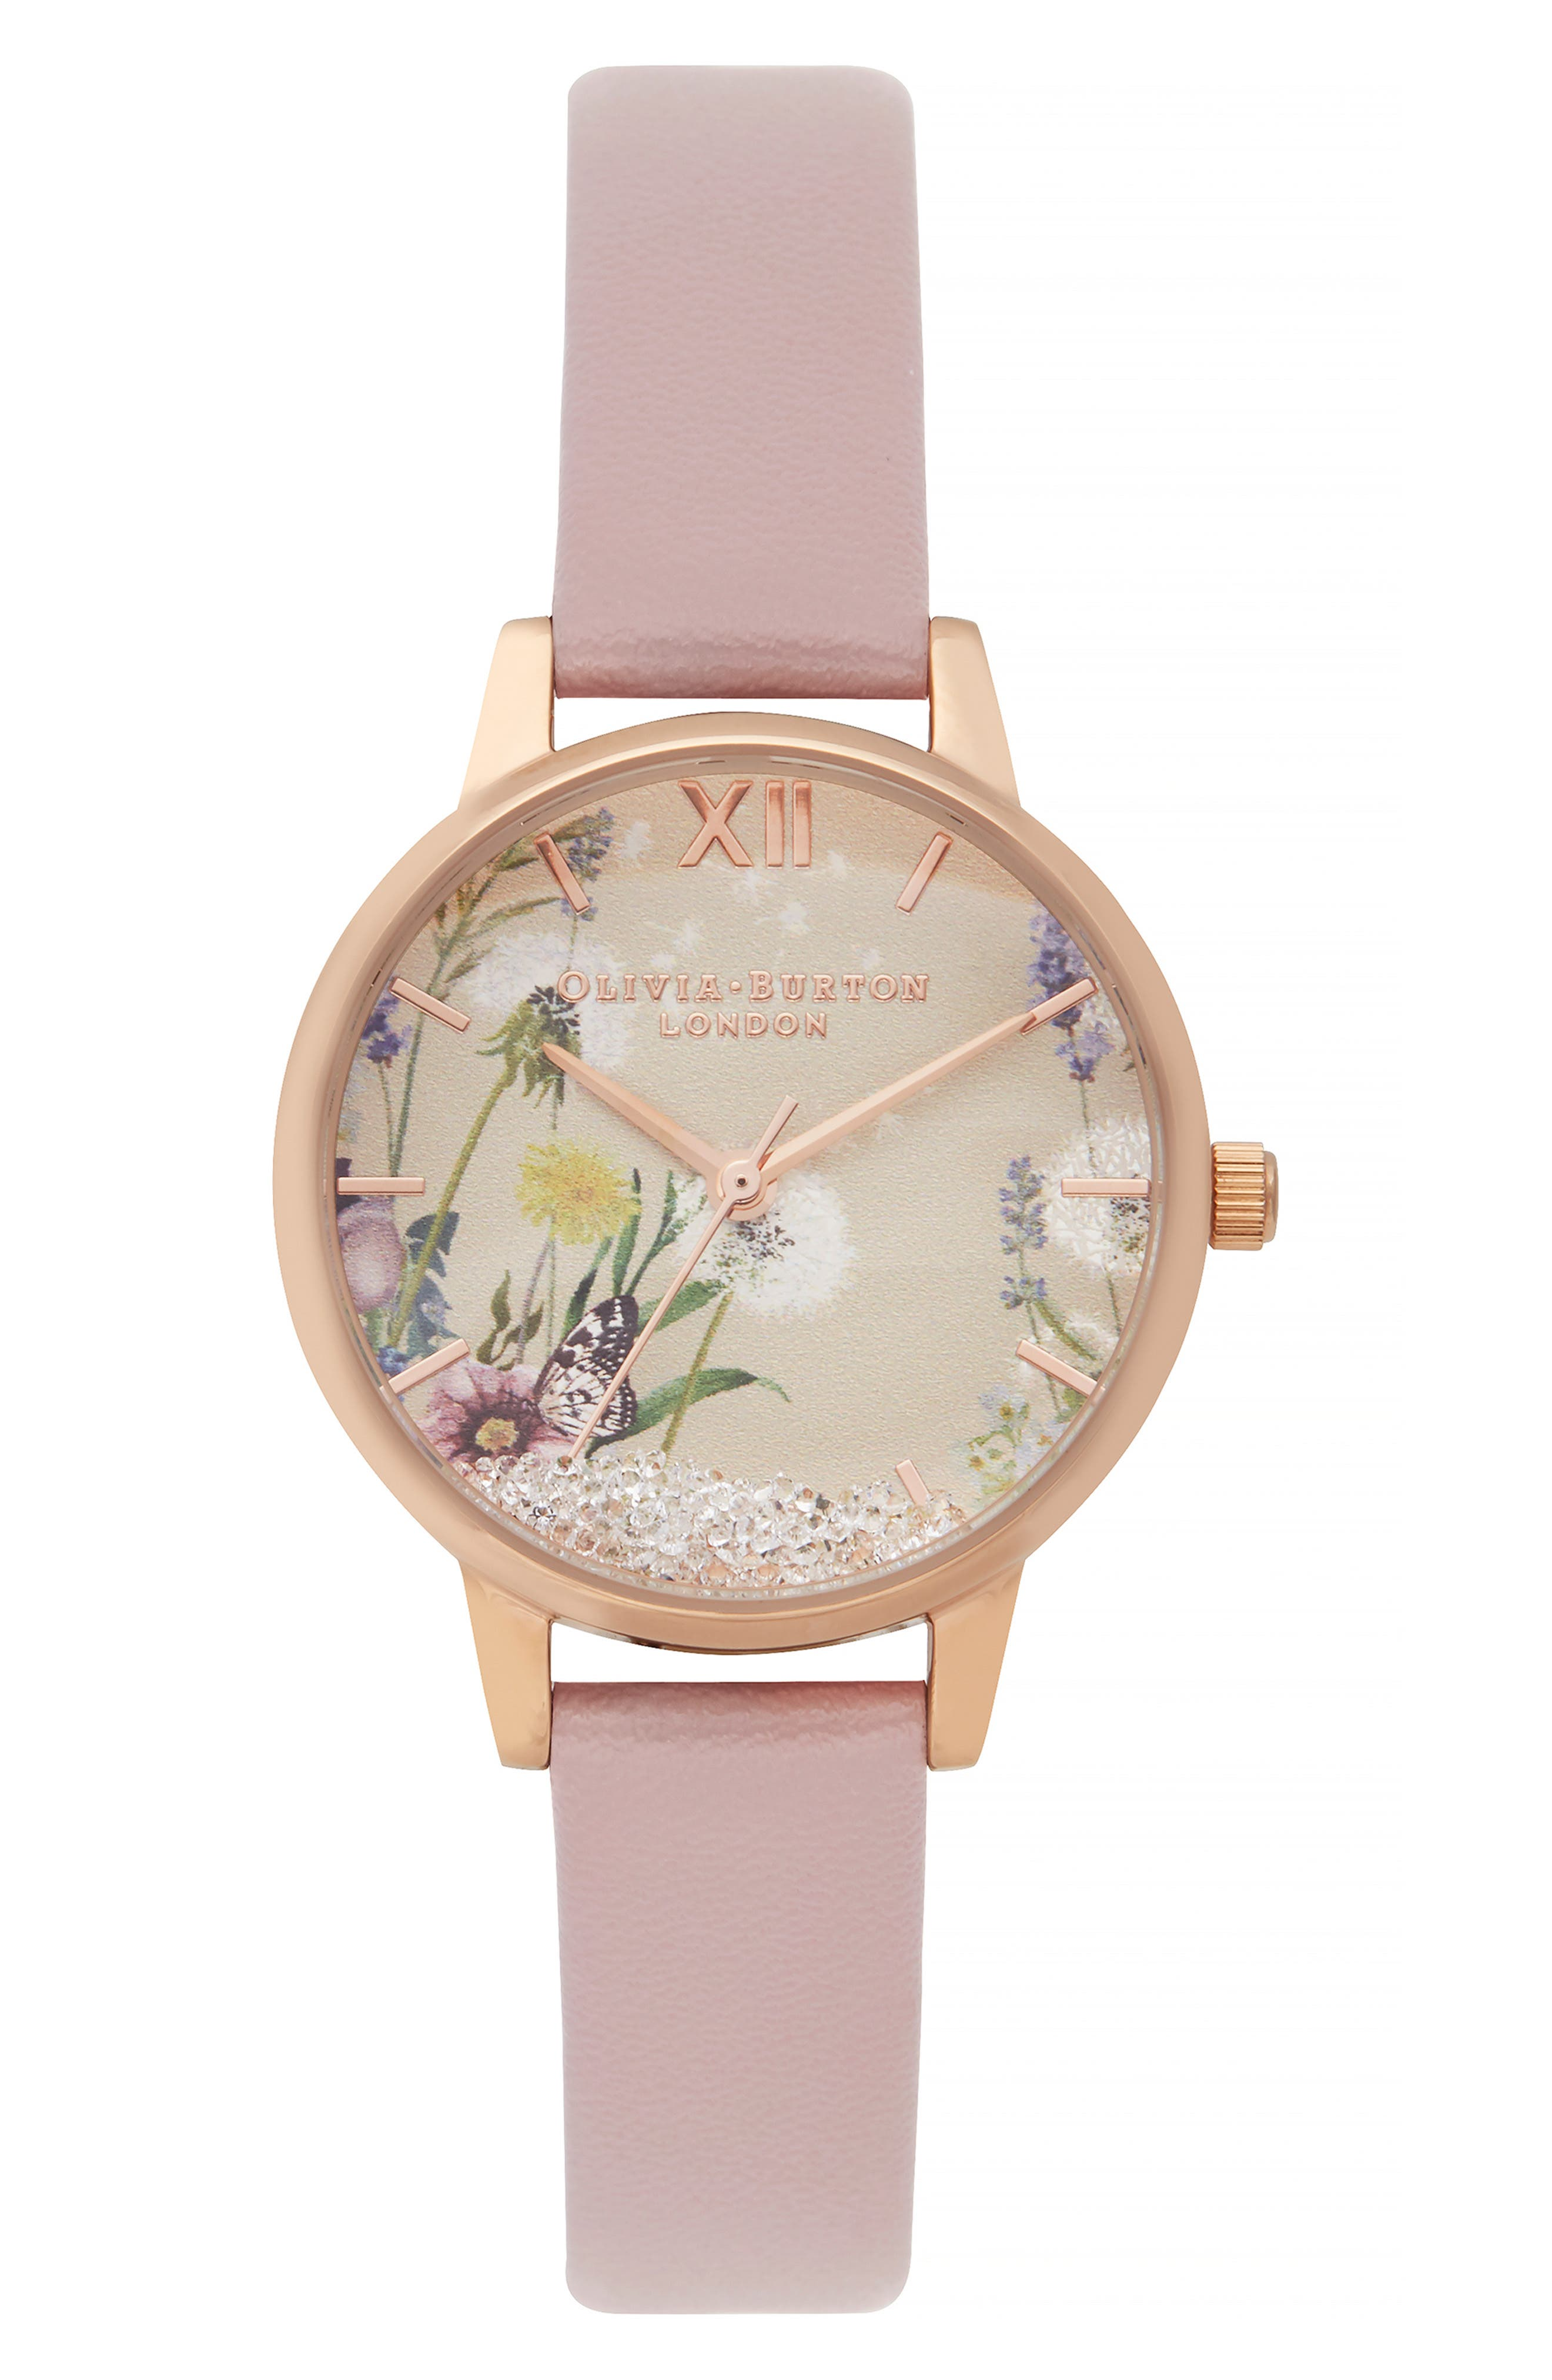 OLIVIA BURTON Wishing Leather Strap Watch, 35mm, Main, color, ROSE SAND/SILVER FLOR/ROSEGOLD